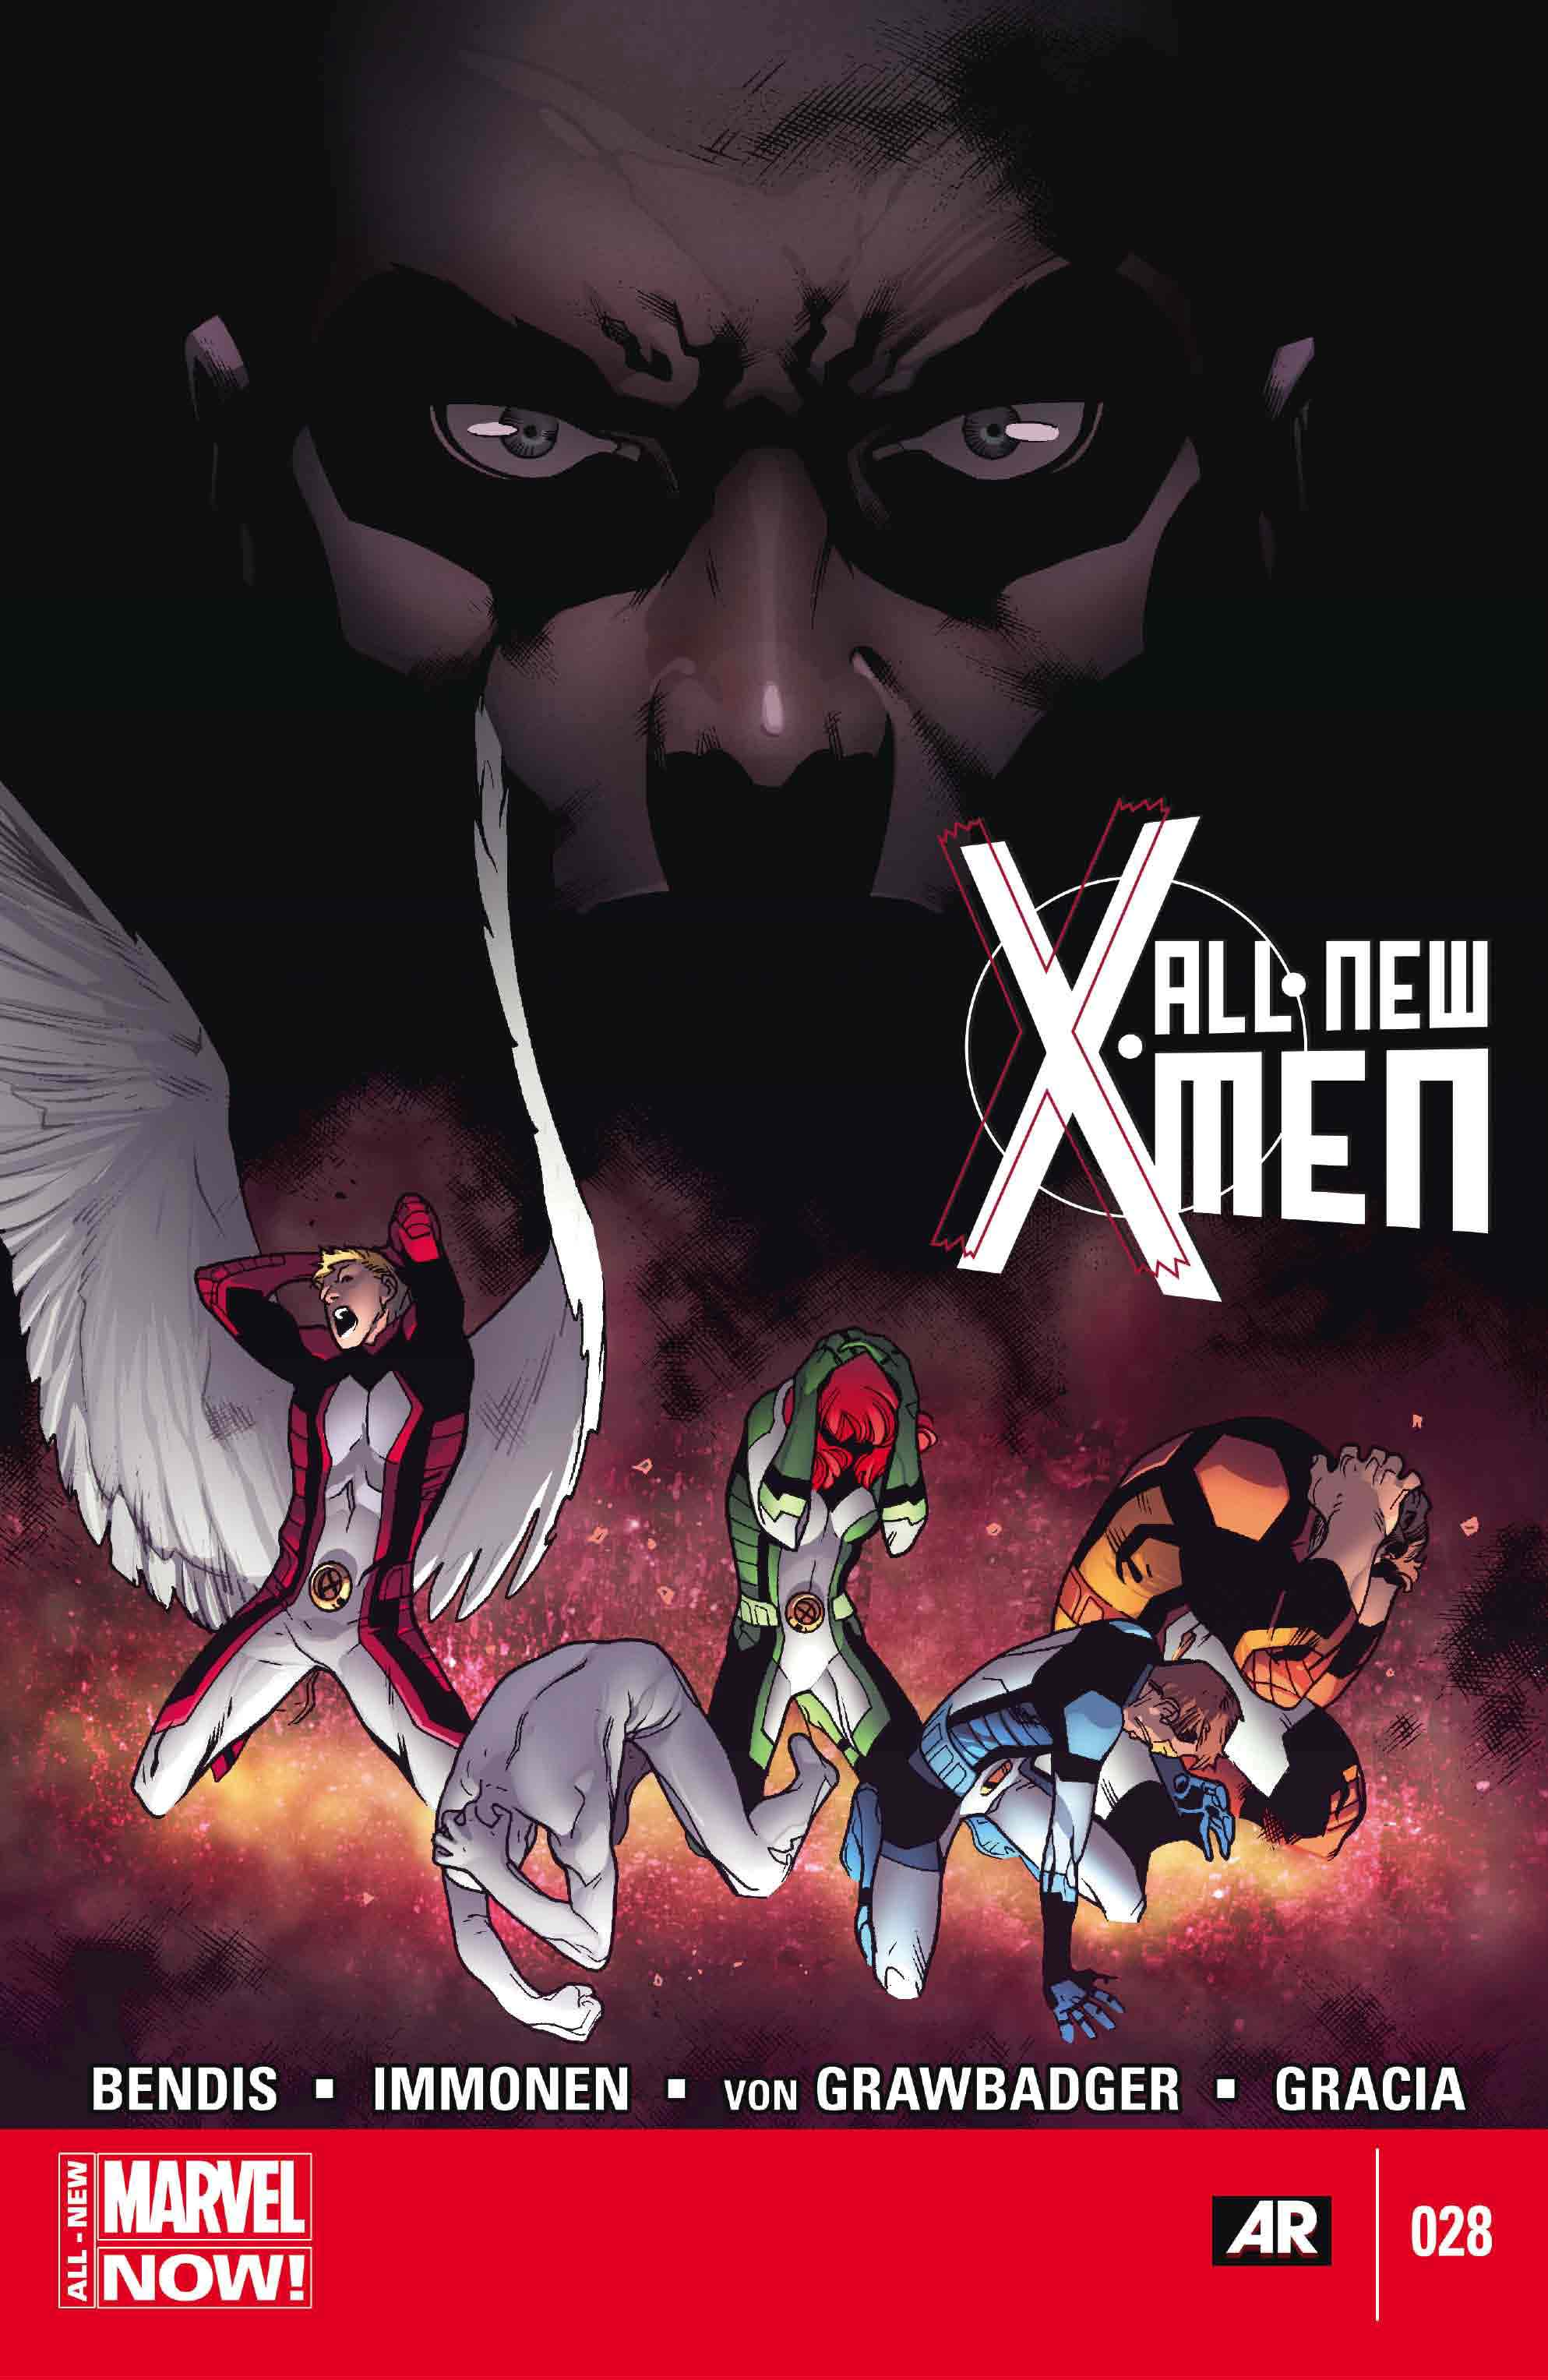 'All-New X-Men' #28 cover by Stuart Immonen, Wade Von Grawbadger & Marte Gracia